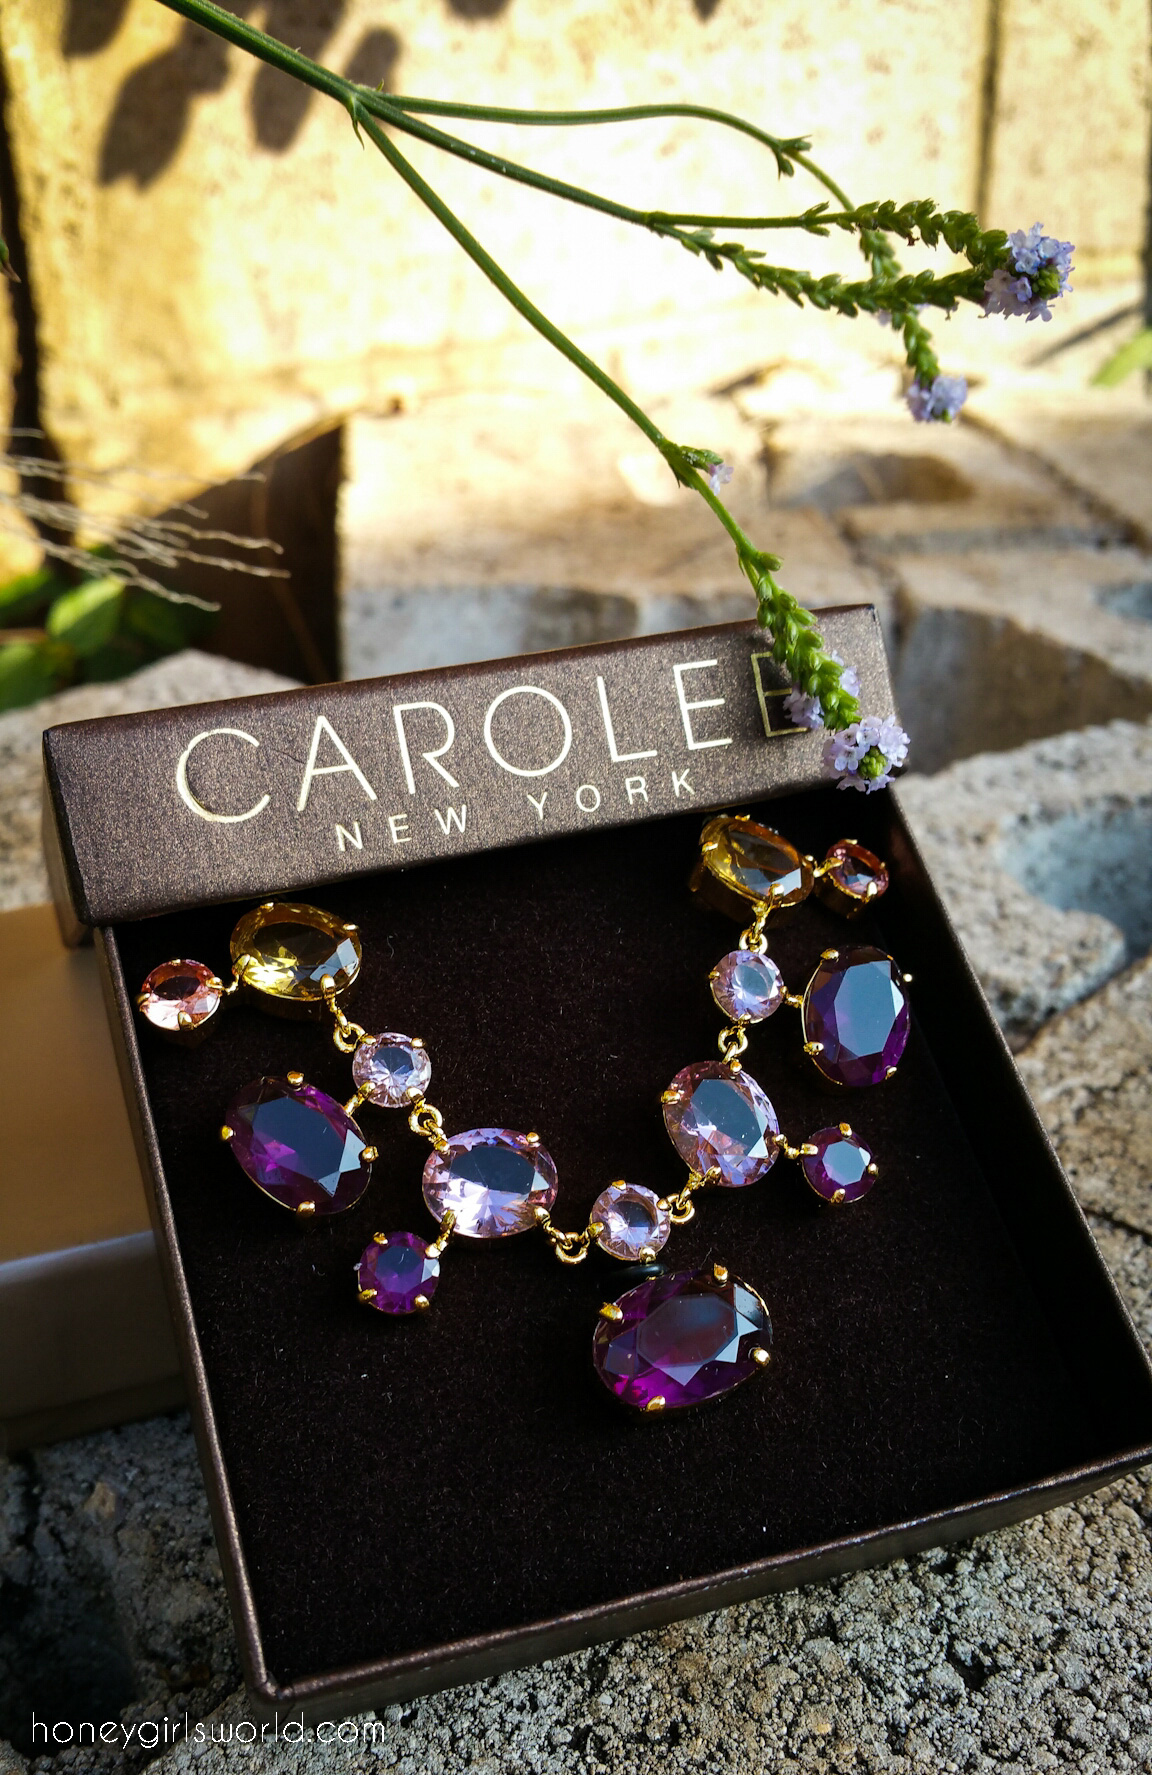 Valentine's Day, Carolee, Jewelry, fashion accessories, style, statement jewelry, statement necklace, necklace, valentine's day gift,